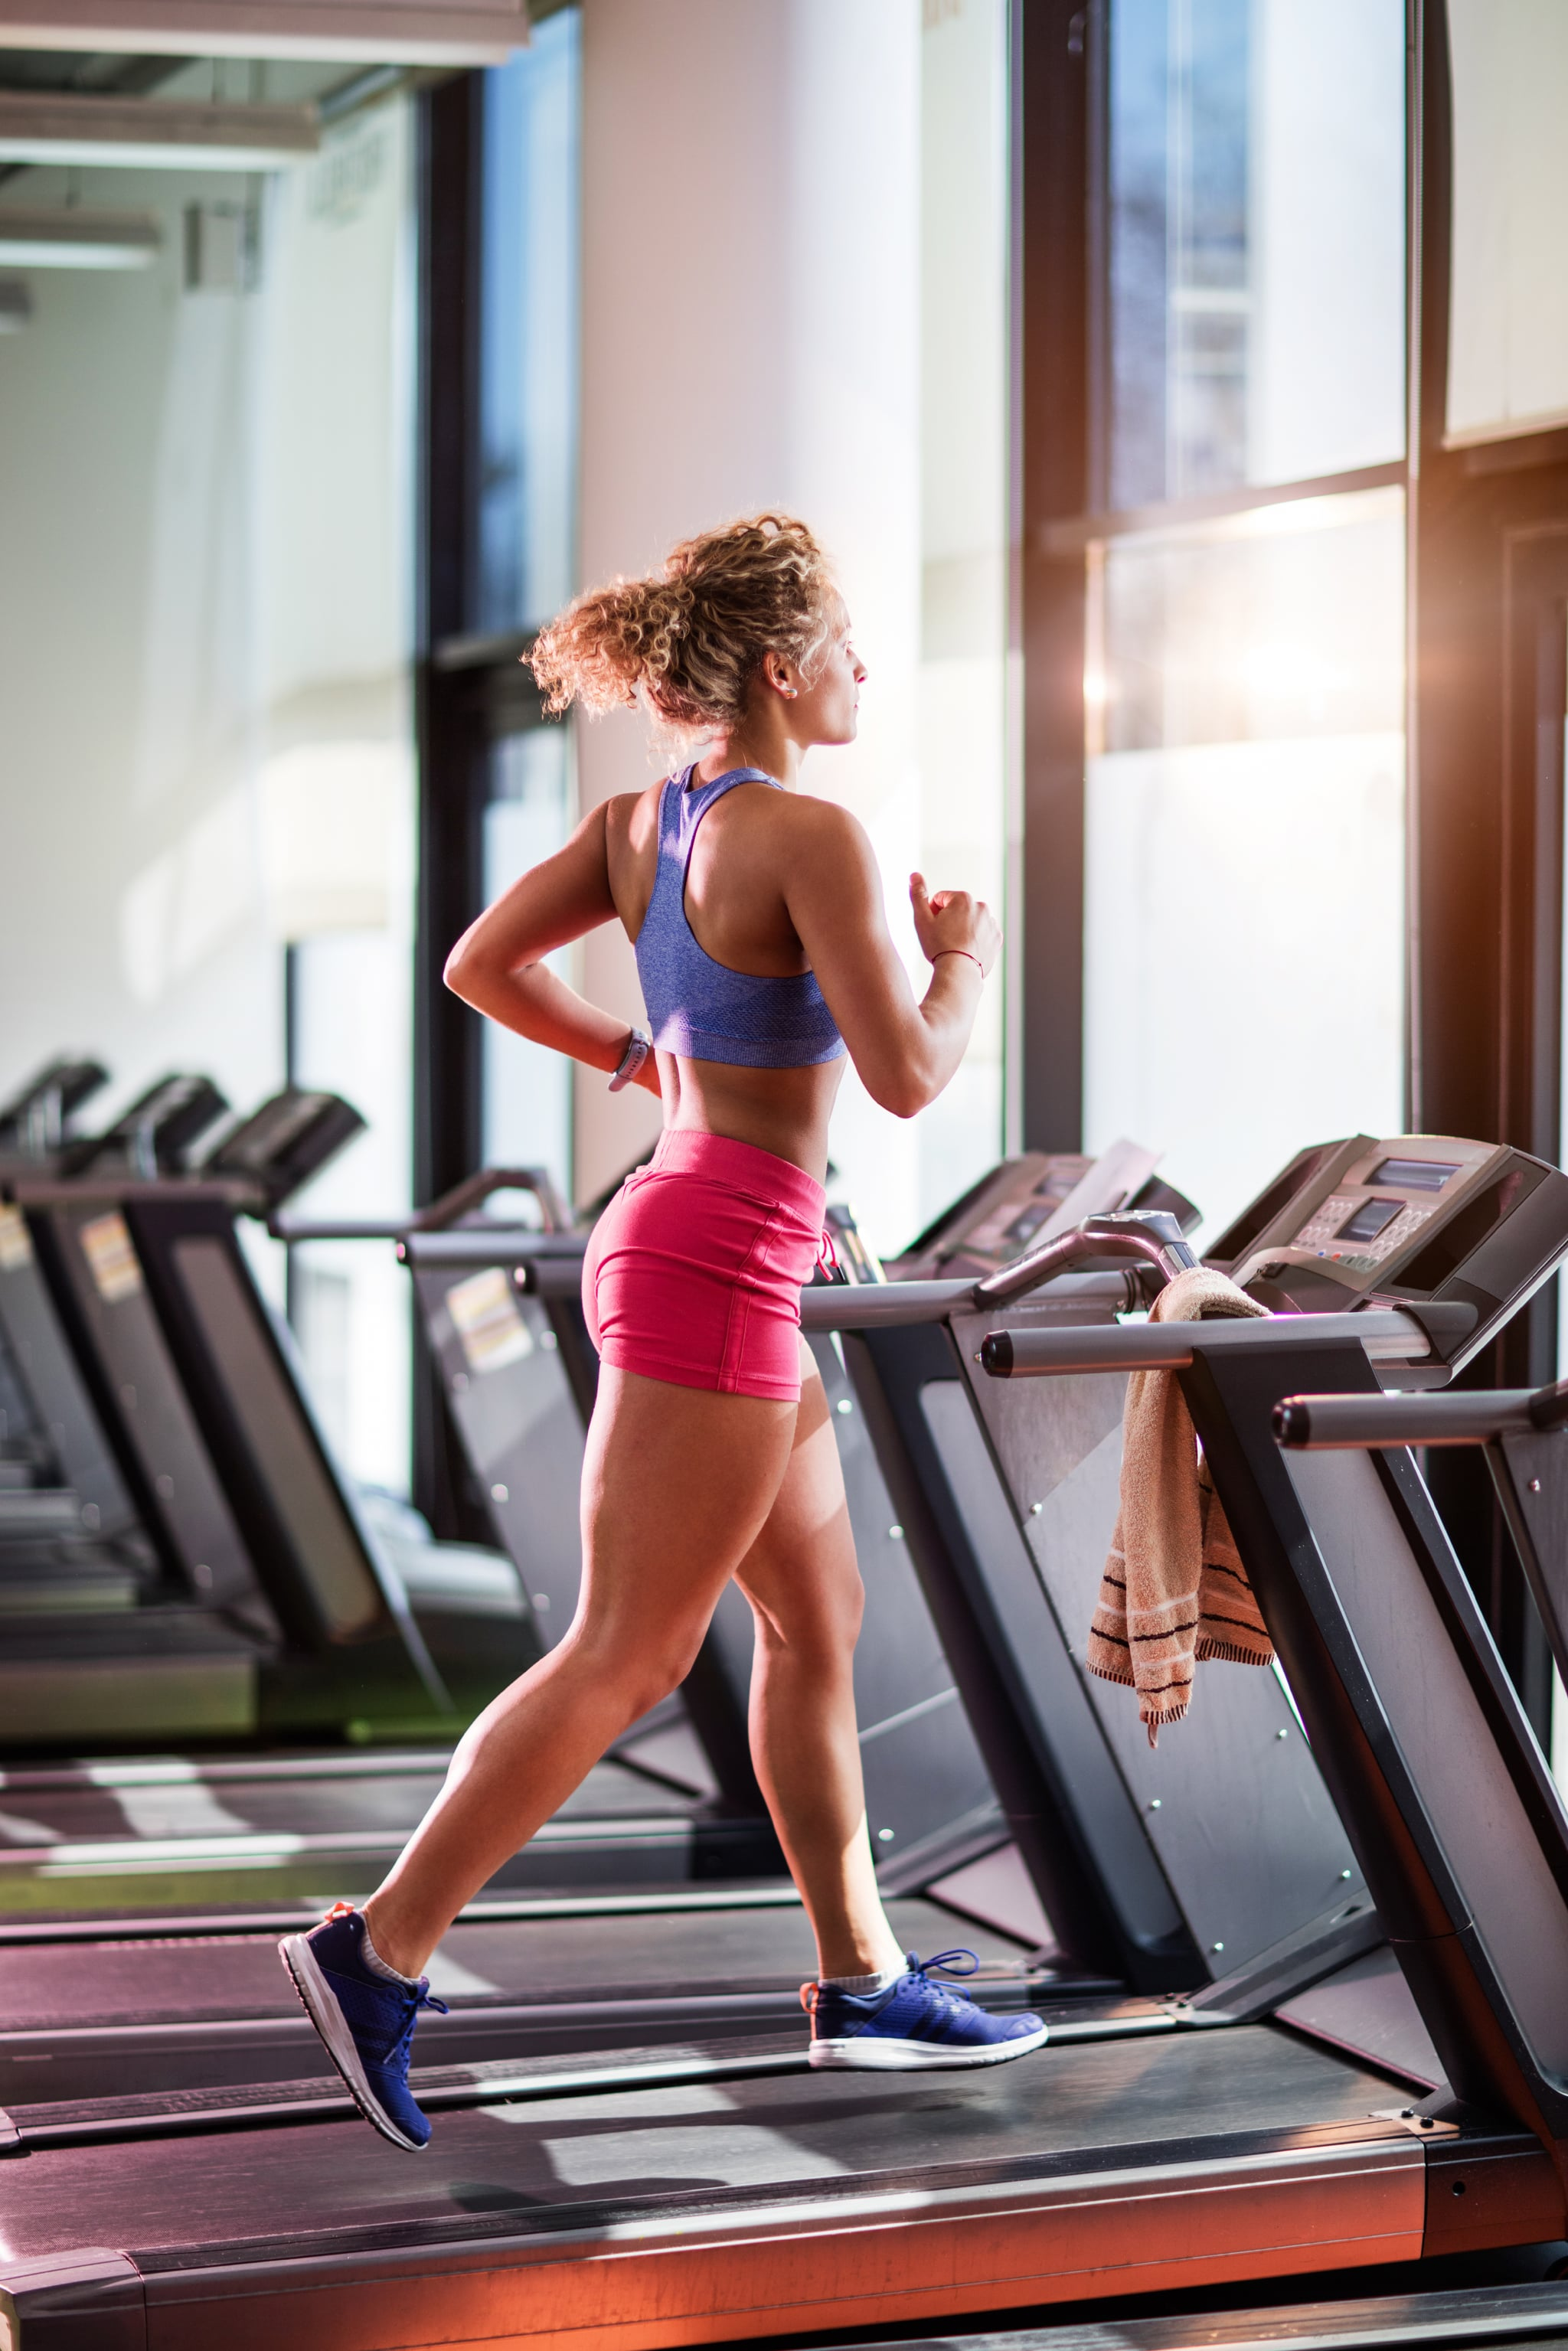 Walking or Running, Here's How Long You Should Hit the Treadmill to Actually Lose Weight